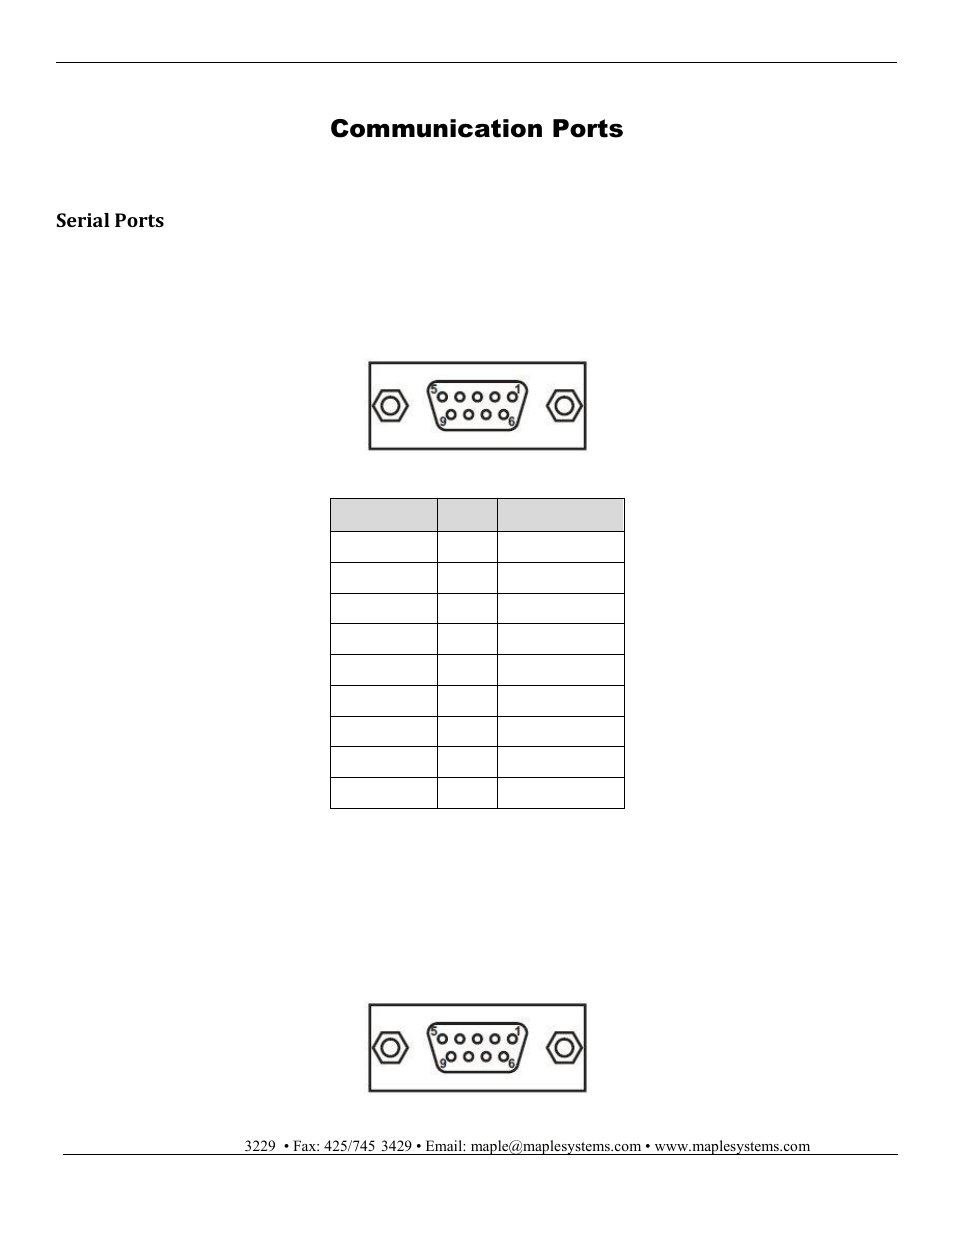 medium resolution of communication ports serial ports maple systems hmc7000 series user manual page 16 27